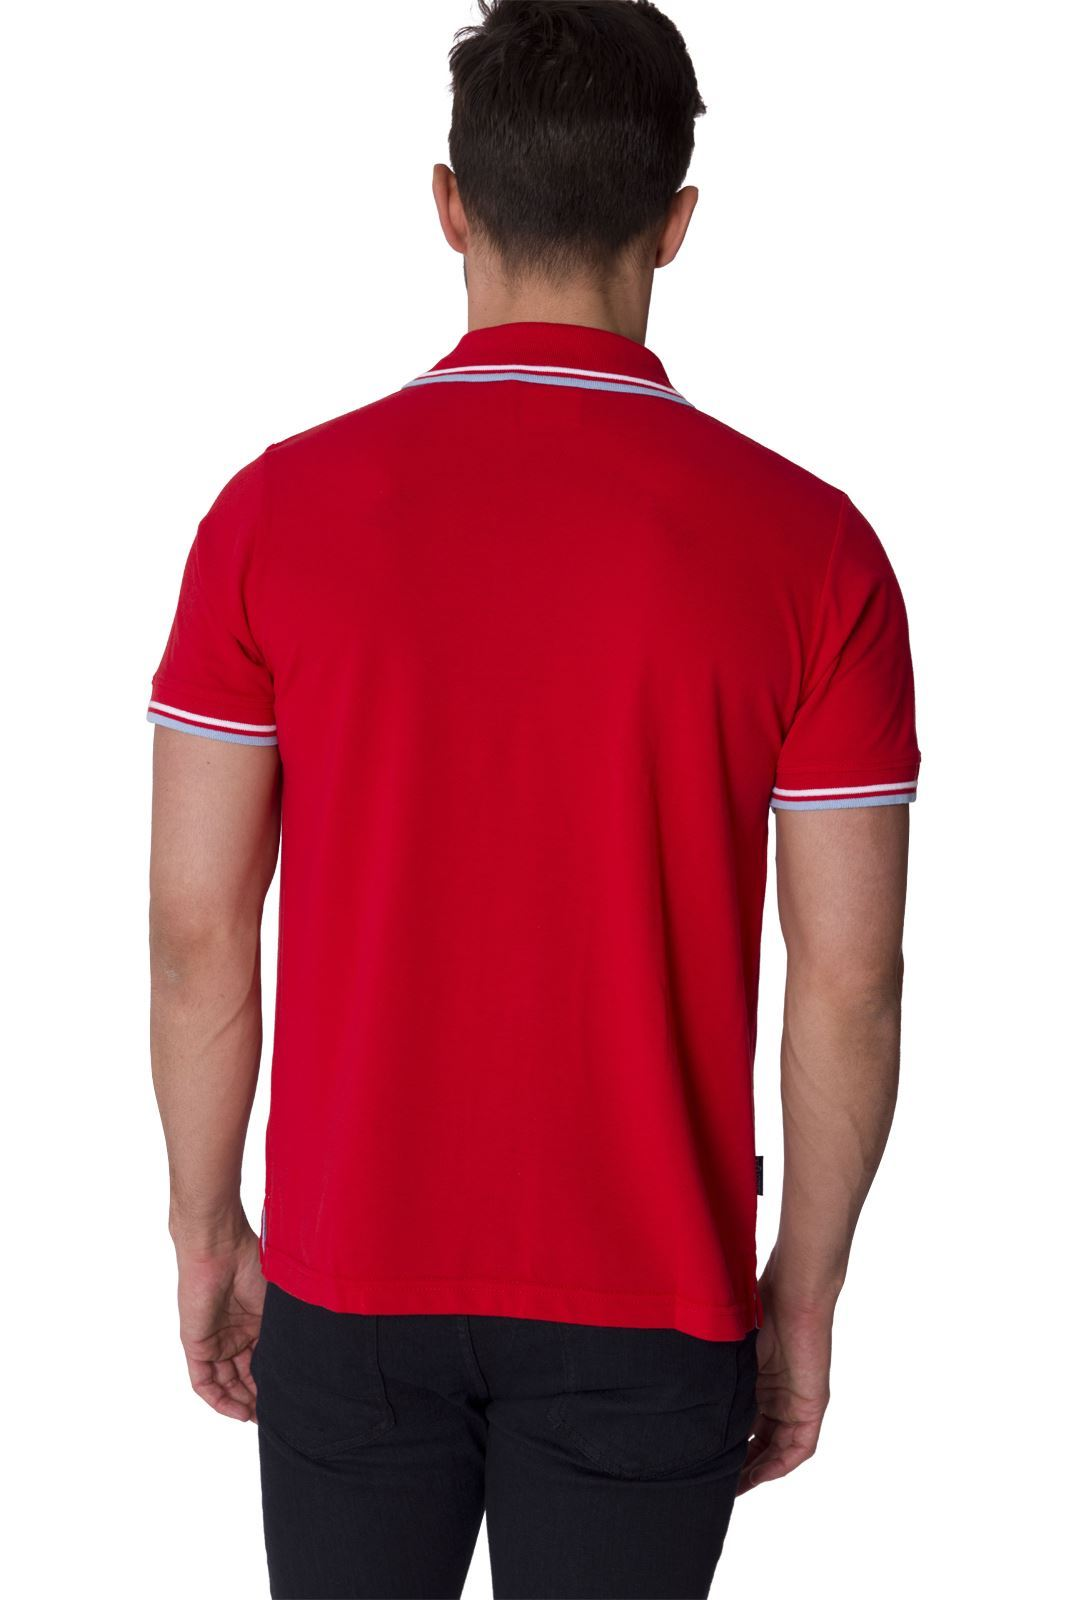 Slazenger designer new mens short sleeve collared polo tee New designer t shirts